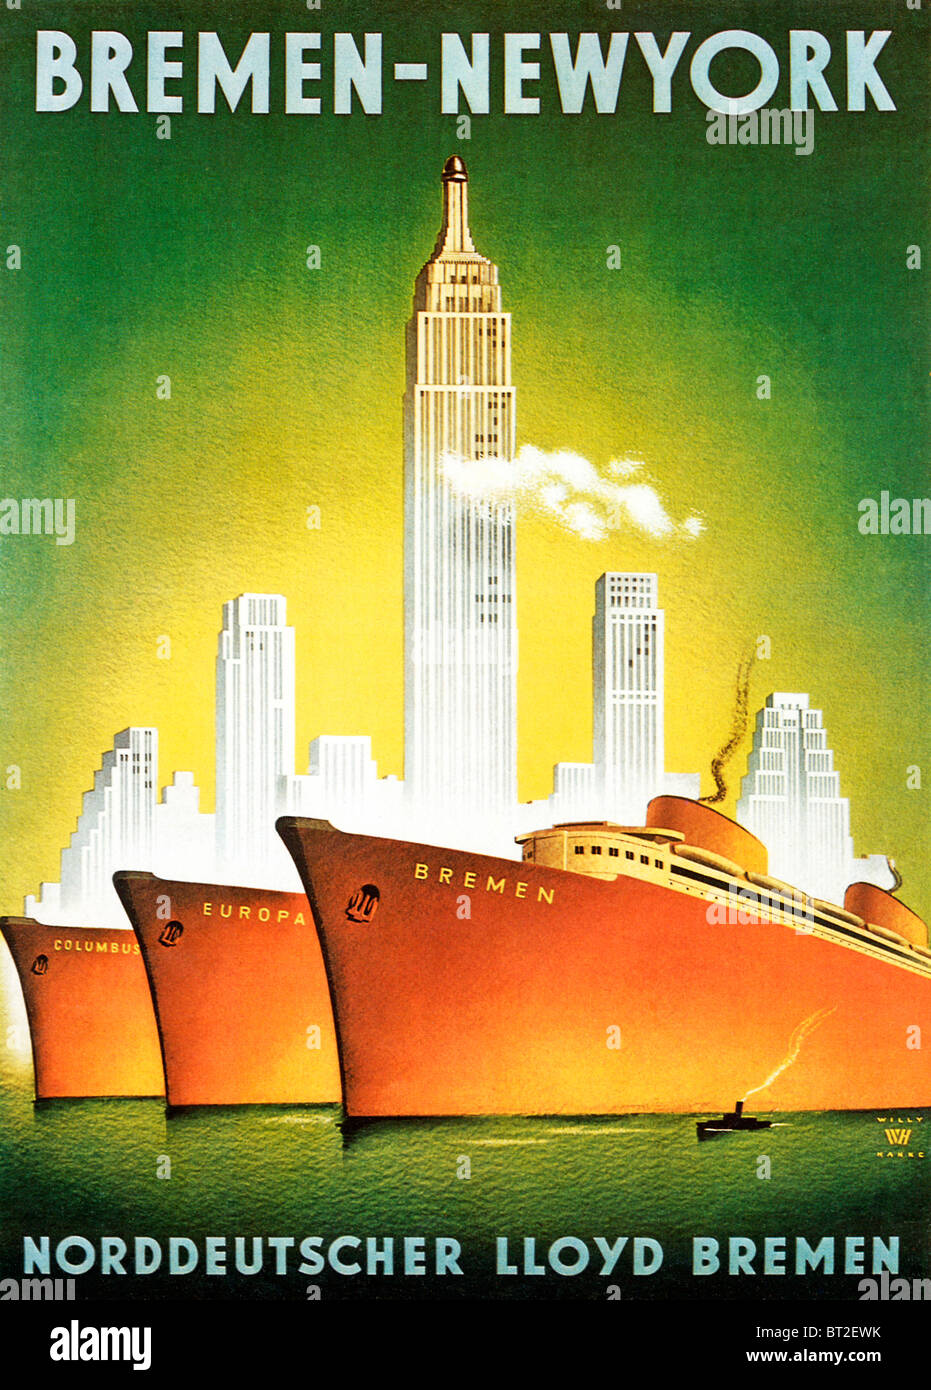 bremen to new york 1920s art deco poster for the norddeutscher lloyd stock photo 32017711 alamy. Black Bedroom Furniture Sets. Home Design Ideas